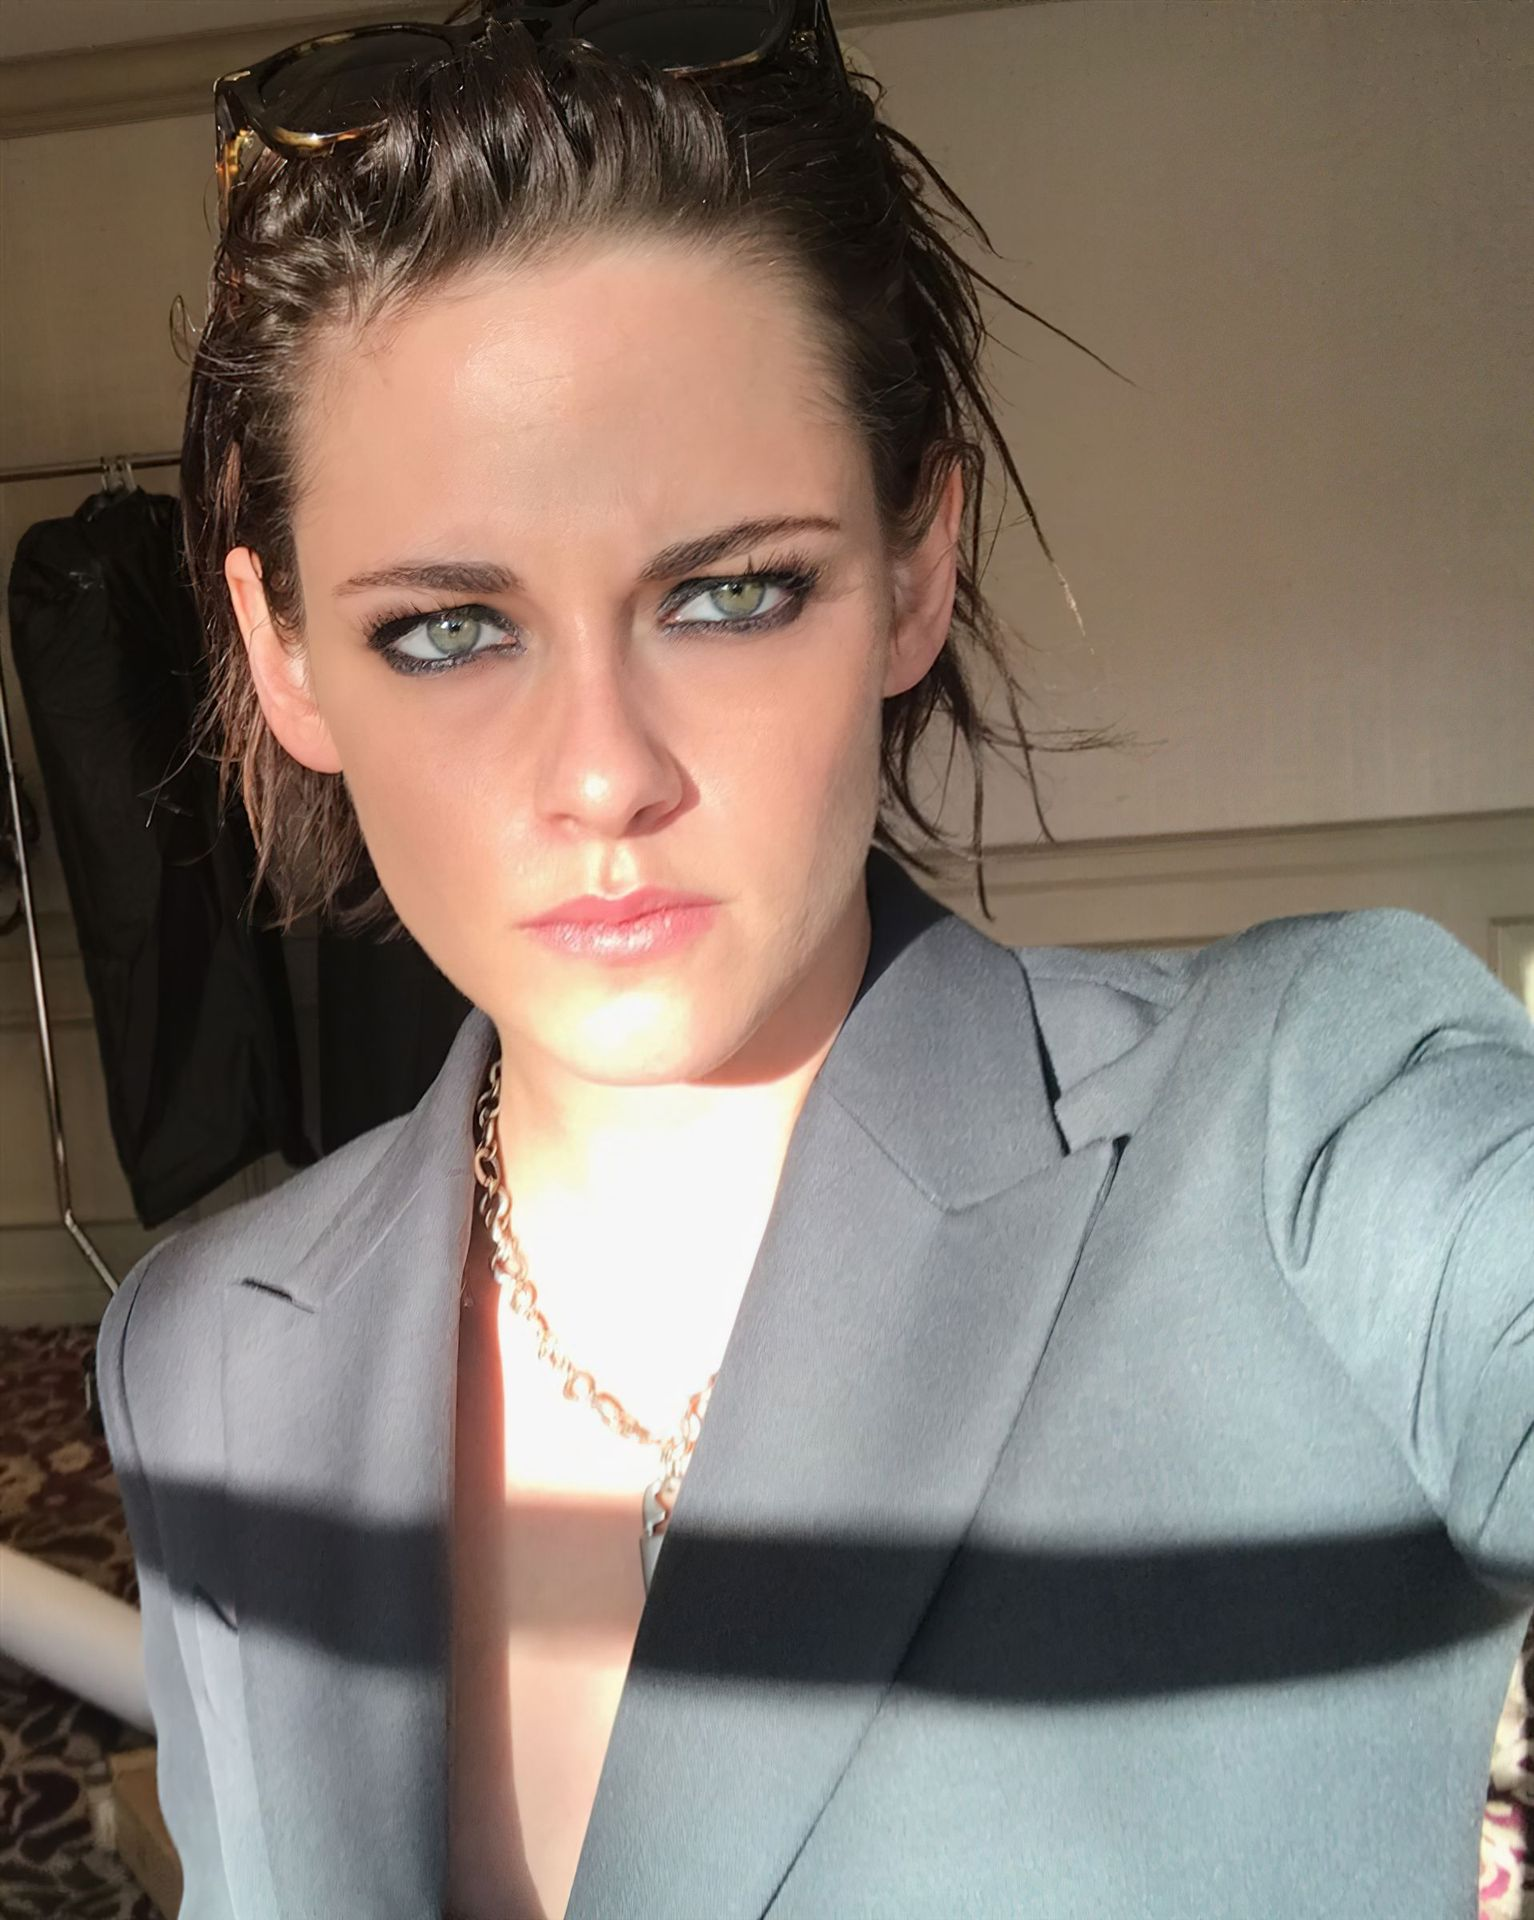 Kristen Stewart Nude Leaked The Fappening Complete Collection 0061